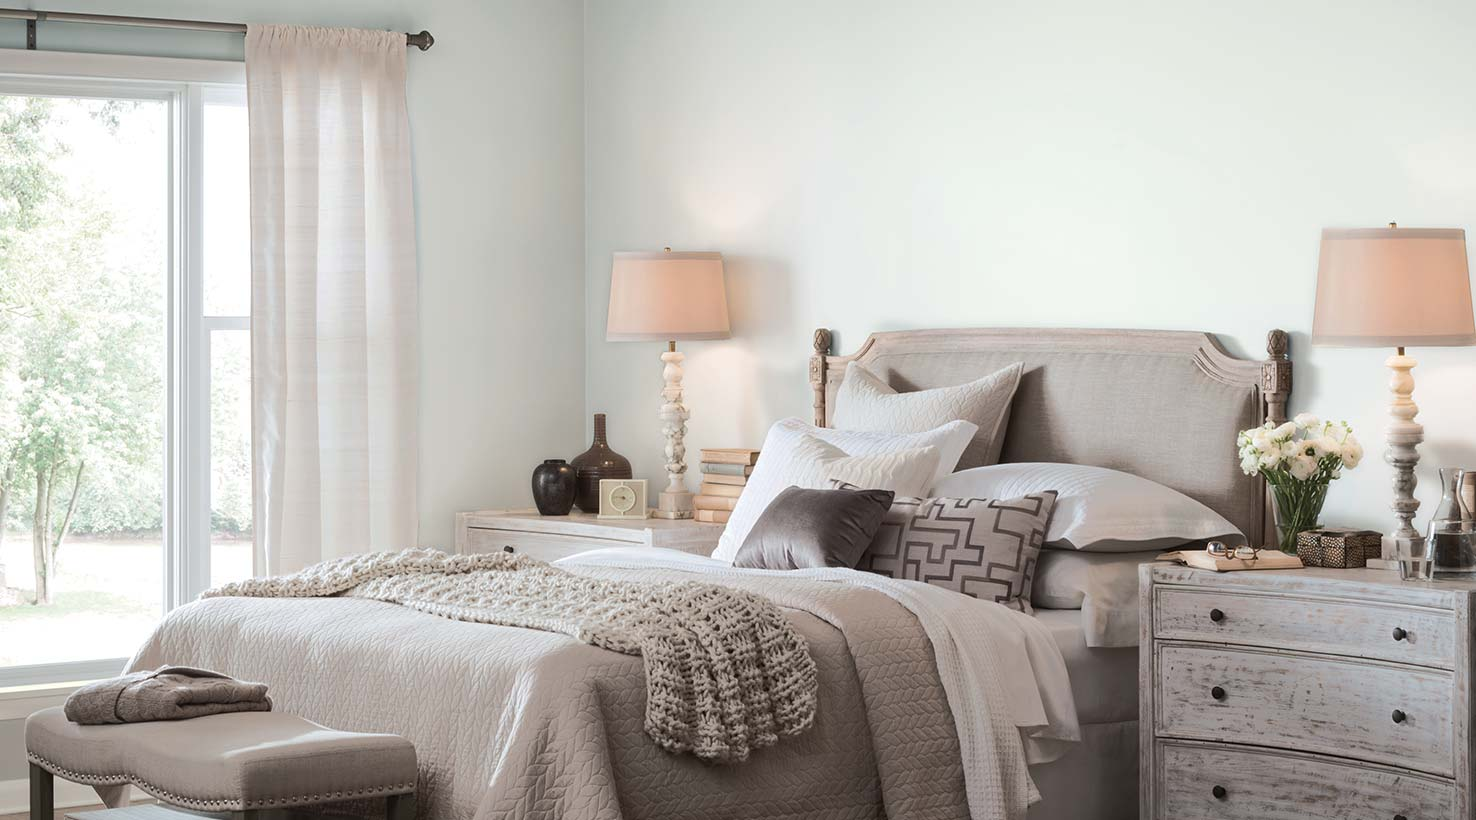 Bedroom paint color ideas inspiration gallery sherwin for Popular paint colors for bedrooms